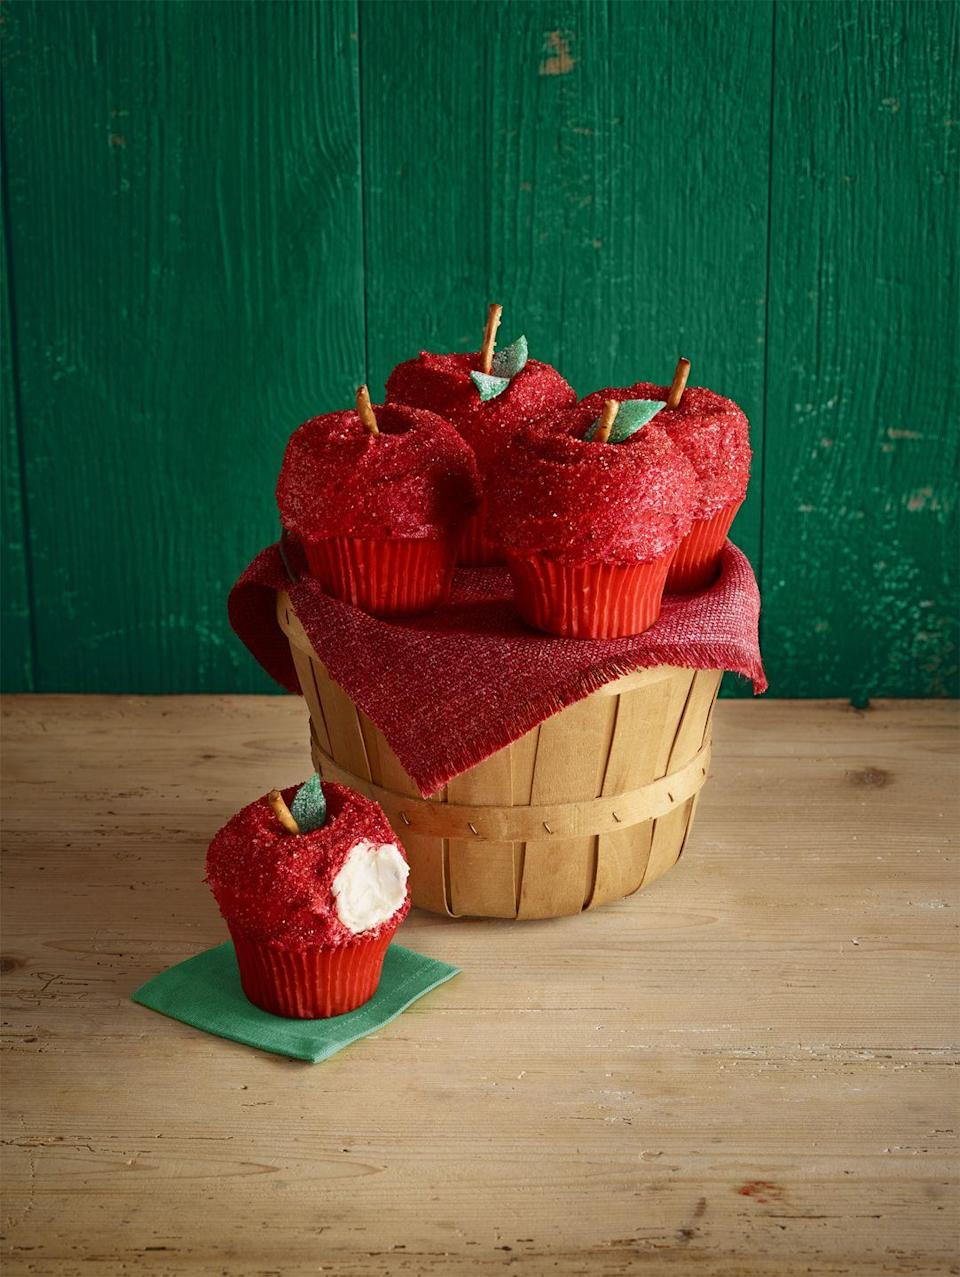 "<p>Red Delicious apples are in season, so why not enjoy them in an <a href=""https://www.womansday.com/food-recipes/food-drinks/g1763/periodic-table-of-cupcakes-54764/"" rel=""nofollow noopener"" target=""_blank"" data-ylk=""slk:adorable cupcake form"" class=""link rapid-noclick-resp"">adorable cupcake form</a>, too?</p><p><strong><em><a href=""https://www.womansday.com/food-recipes/food-drinks/recipes/a56452/apple-cupcakes-recipe/"" rel=""nofollow noopener"" target=""_blank"" data-ylk=""slk:Get the Apple Cupcakes recipe."" class=""link rapid-noclick-resp"">Get the Apple Cupcakes recipe. </a></em></strong></p>"